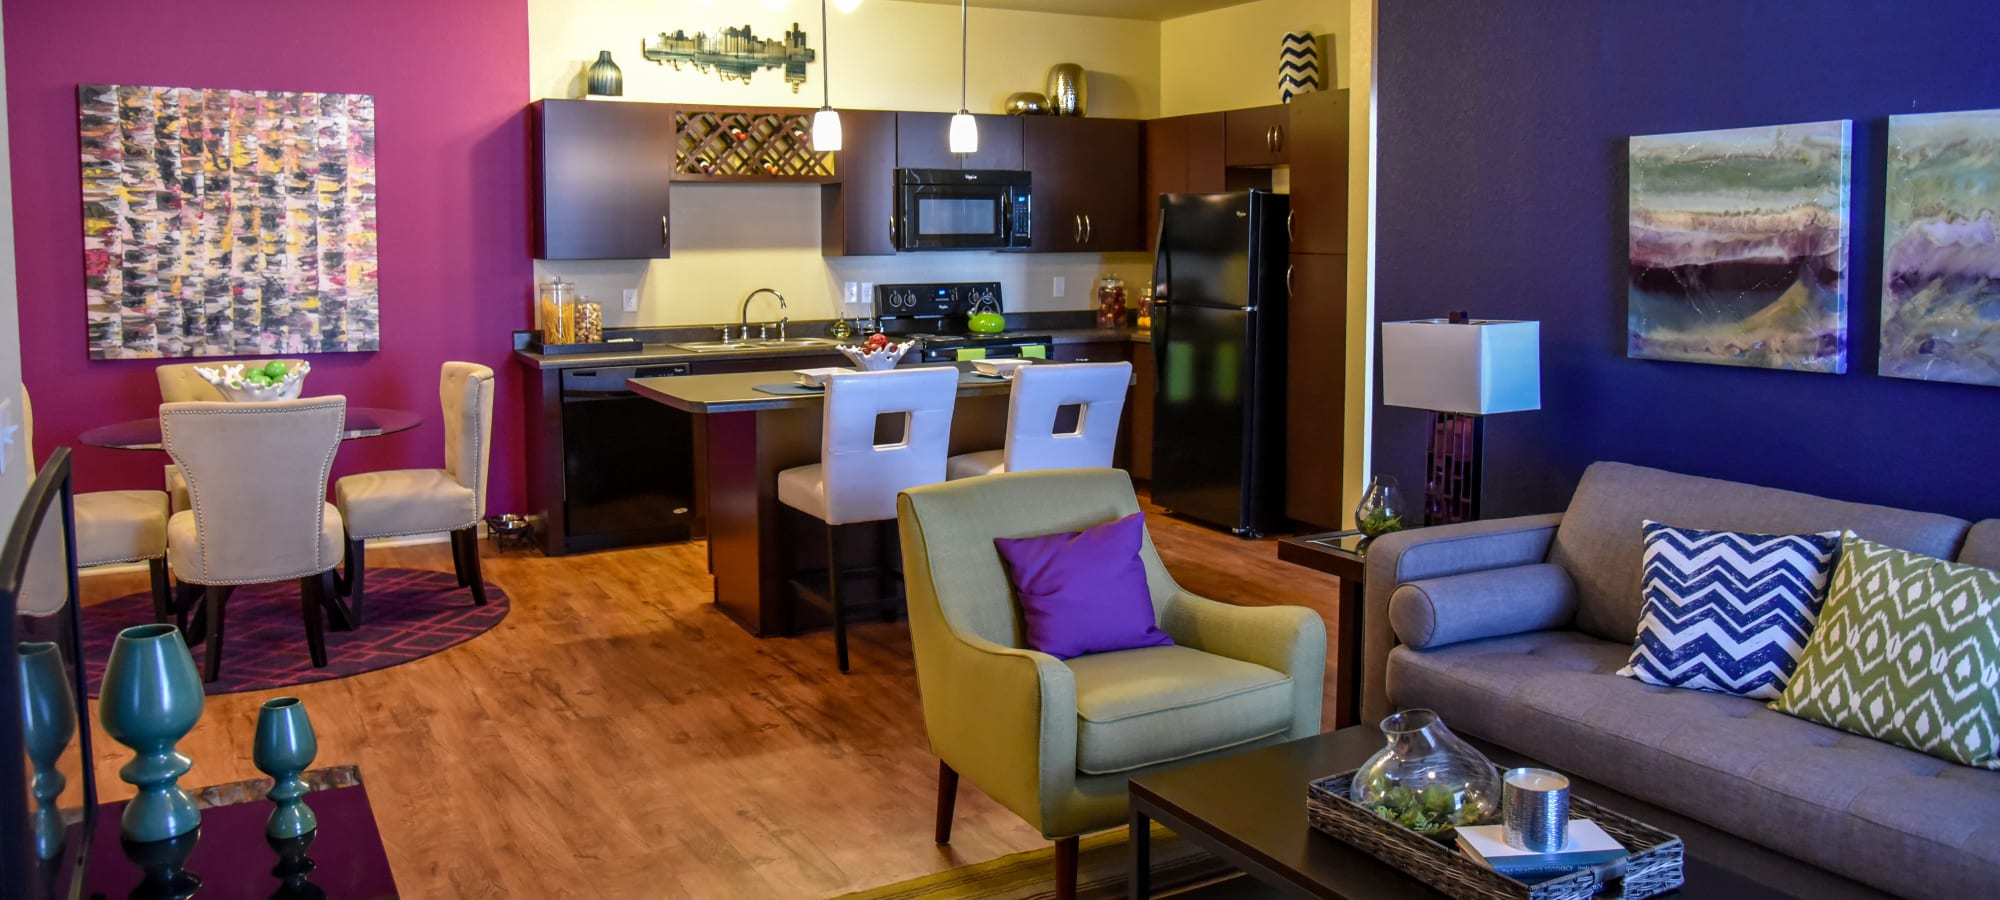 Luxury Apartments with Black Applianes and a Large Dining Area in Savage, MN